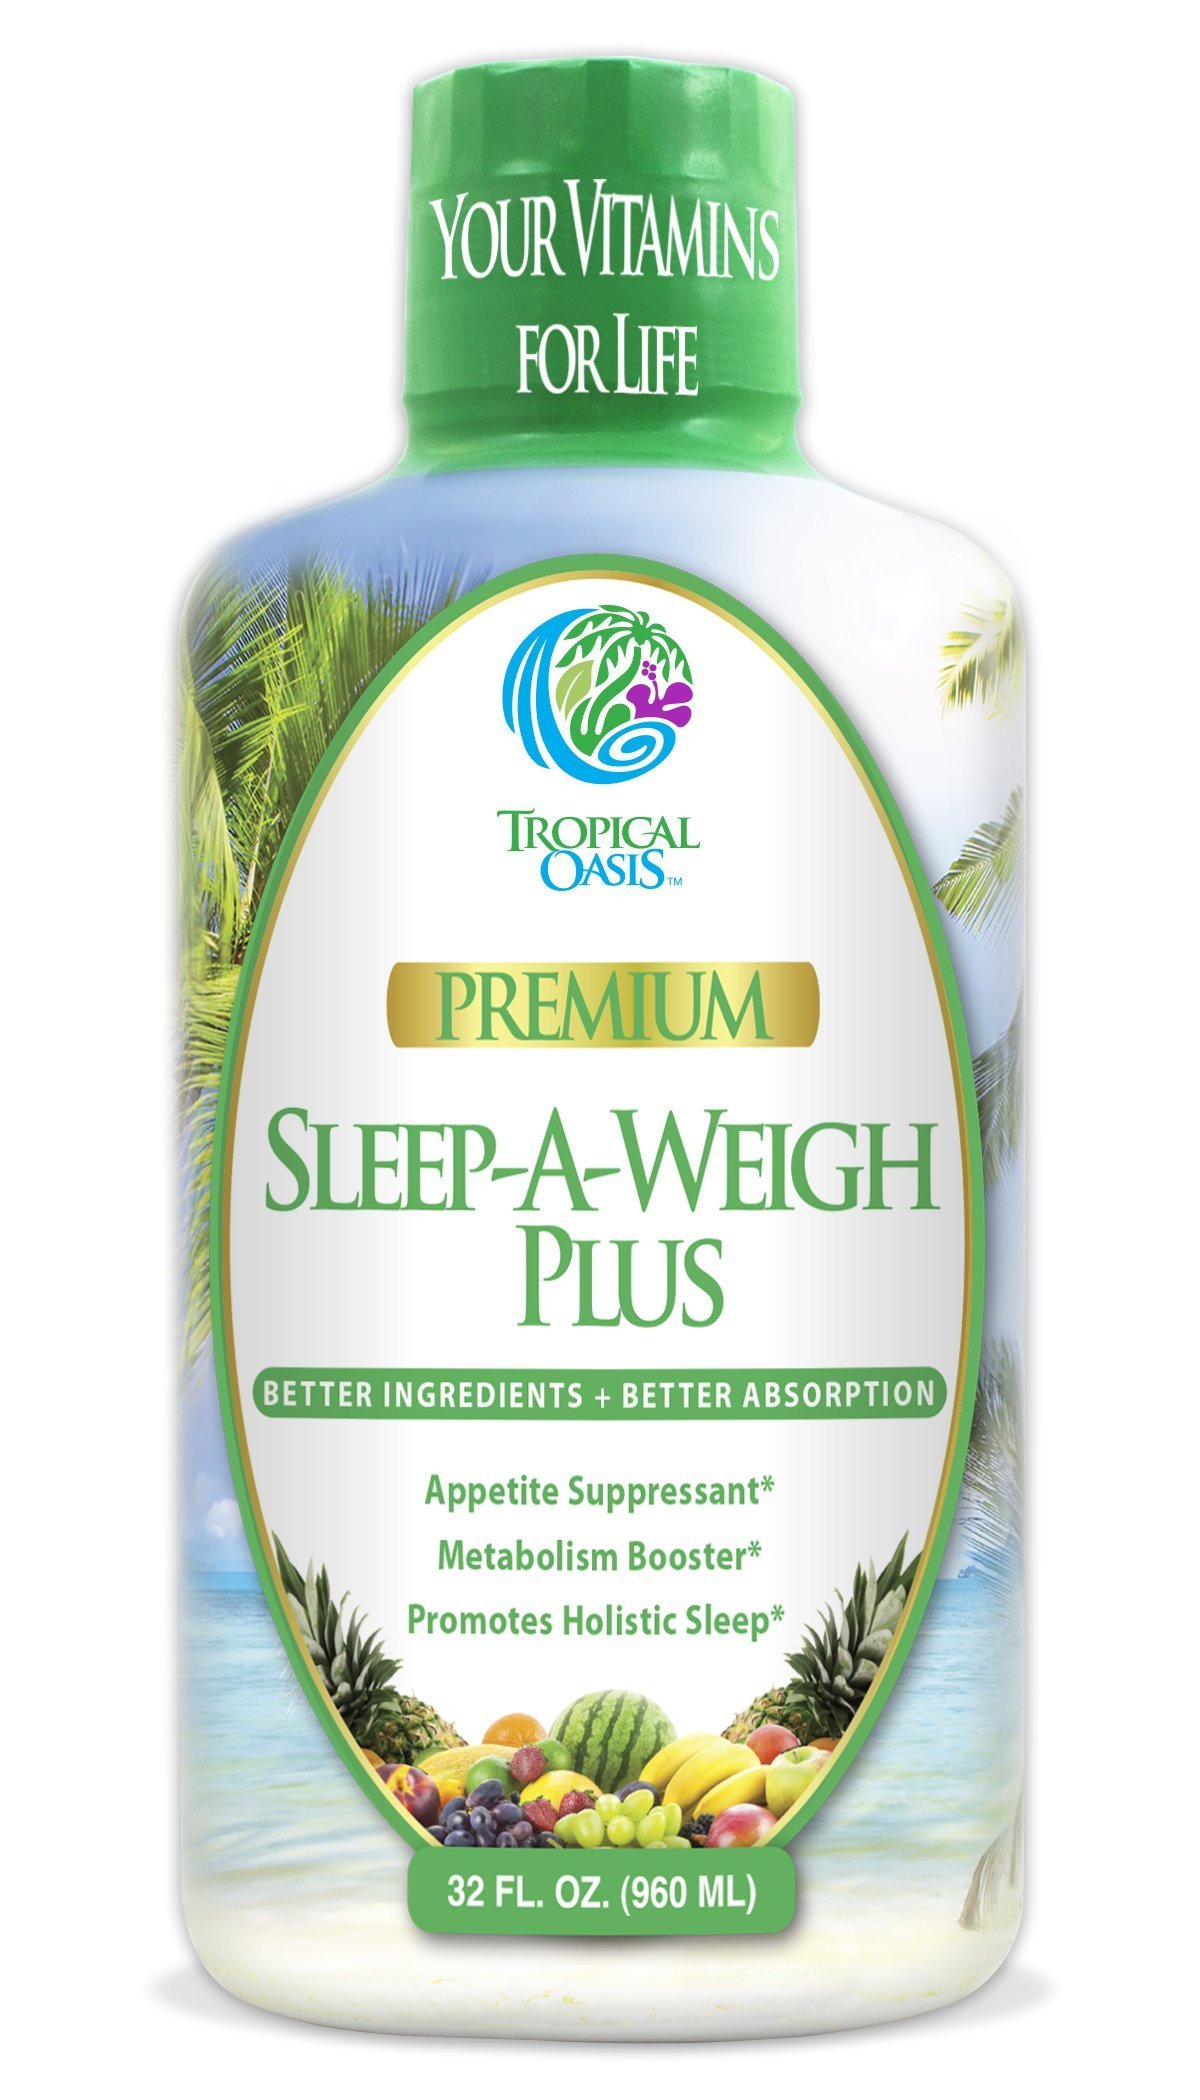 Sleep-A-Weigh Plus w/ Liquid Collagen – Natural Weight loss & Sleeping Aid - 32oz, 32 serv